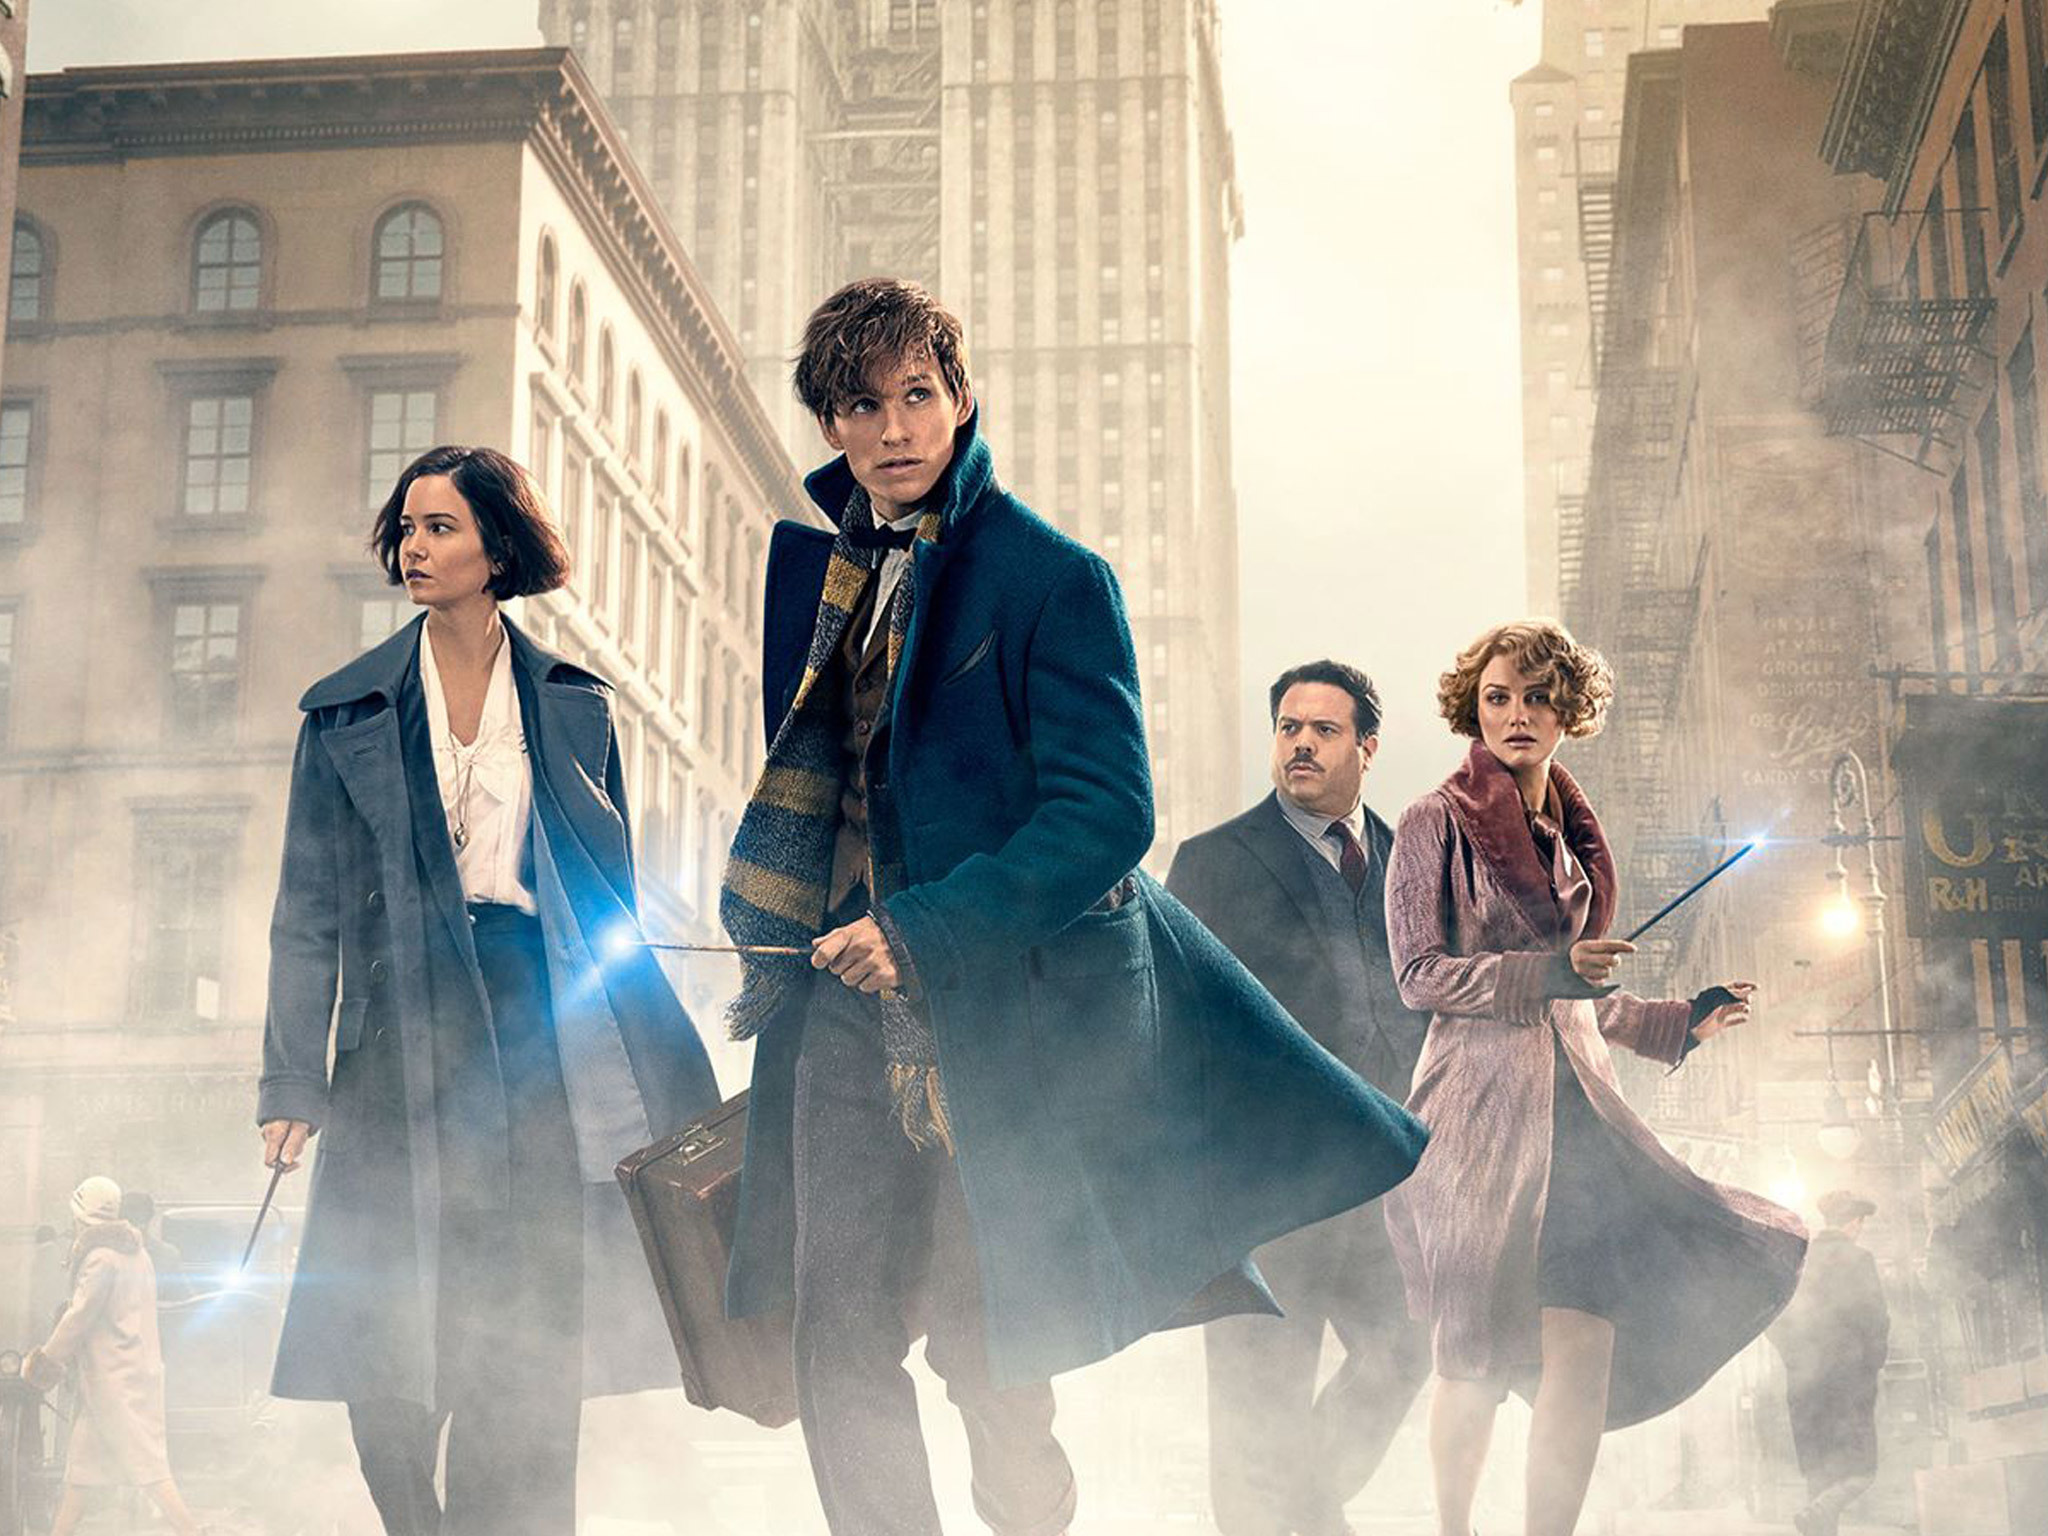 Fantastic Beasts and Where to Find Them poster art